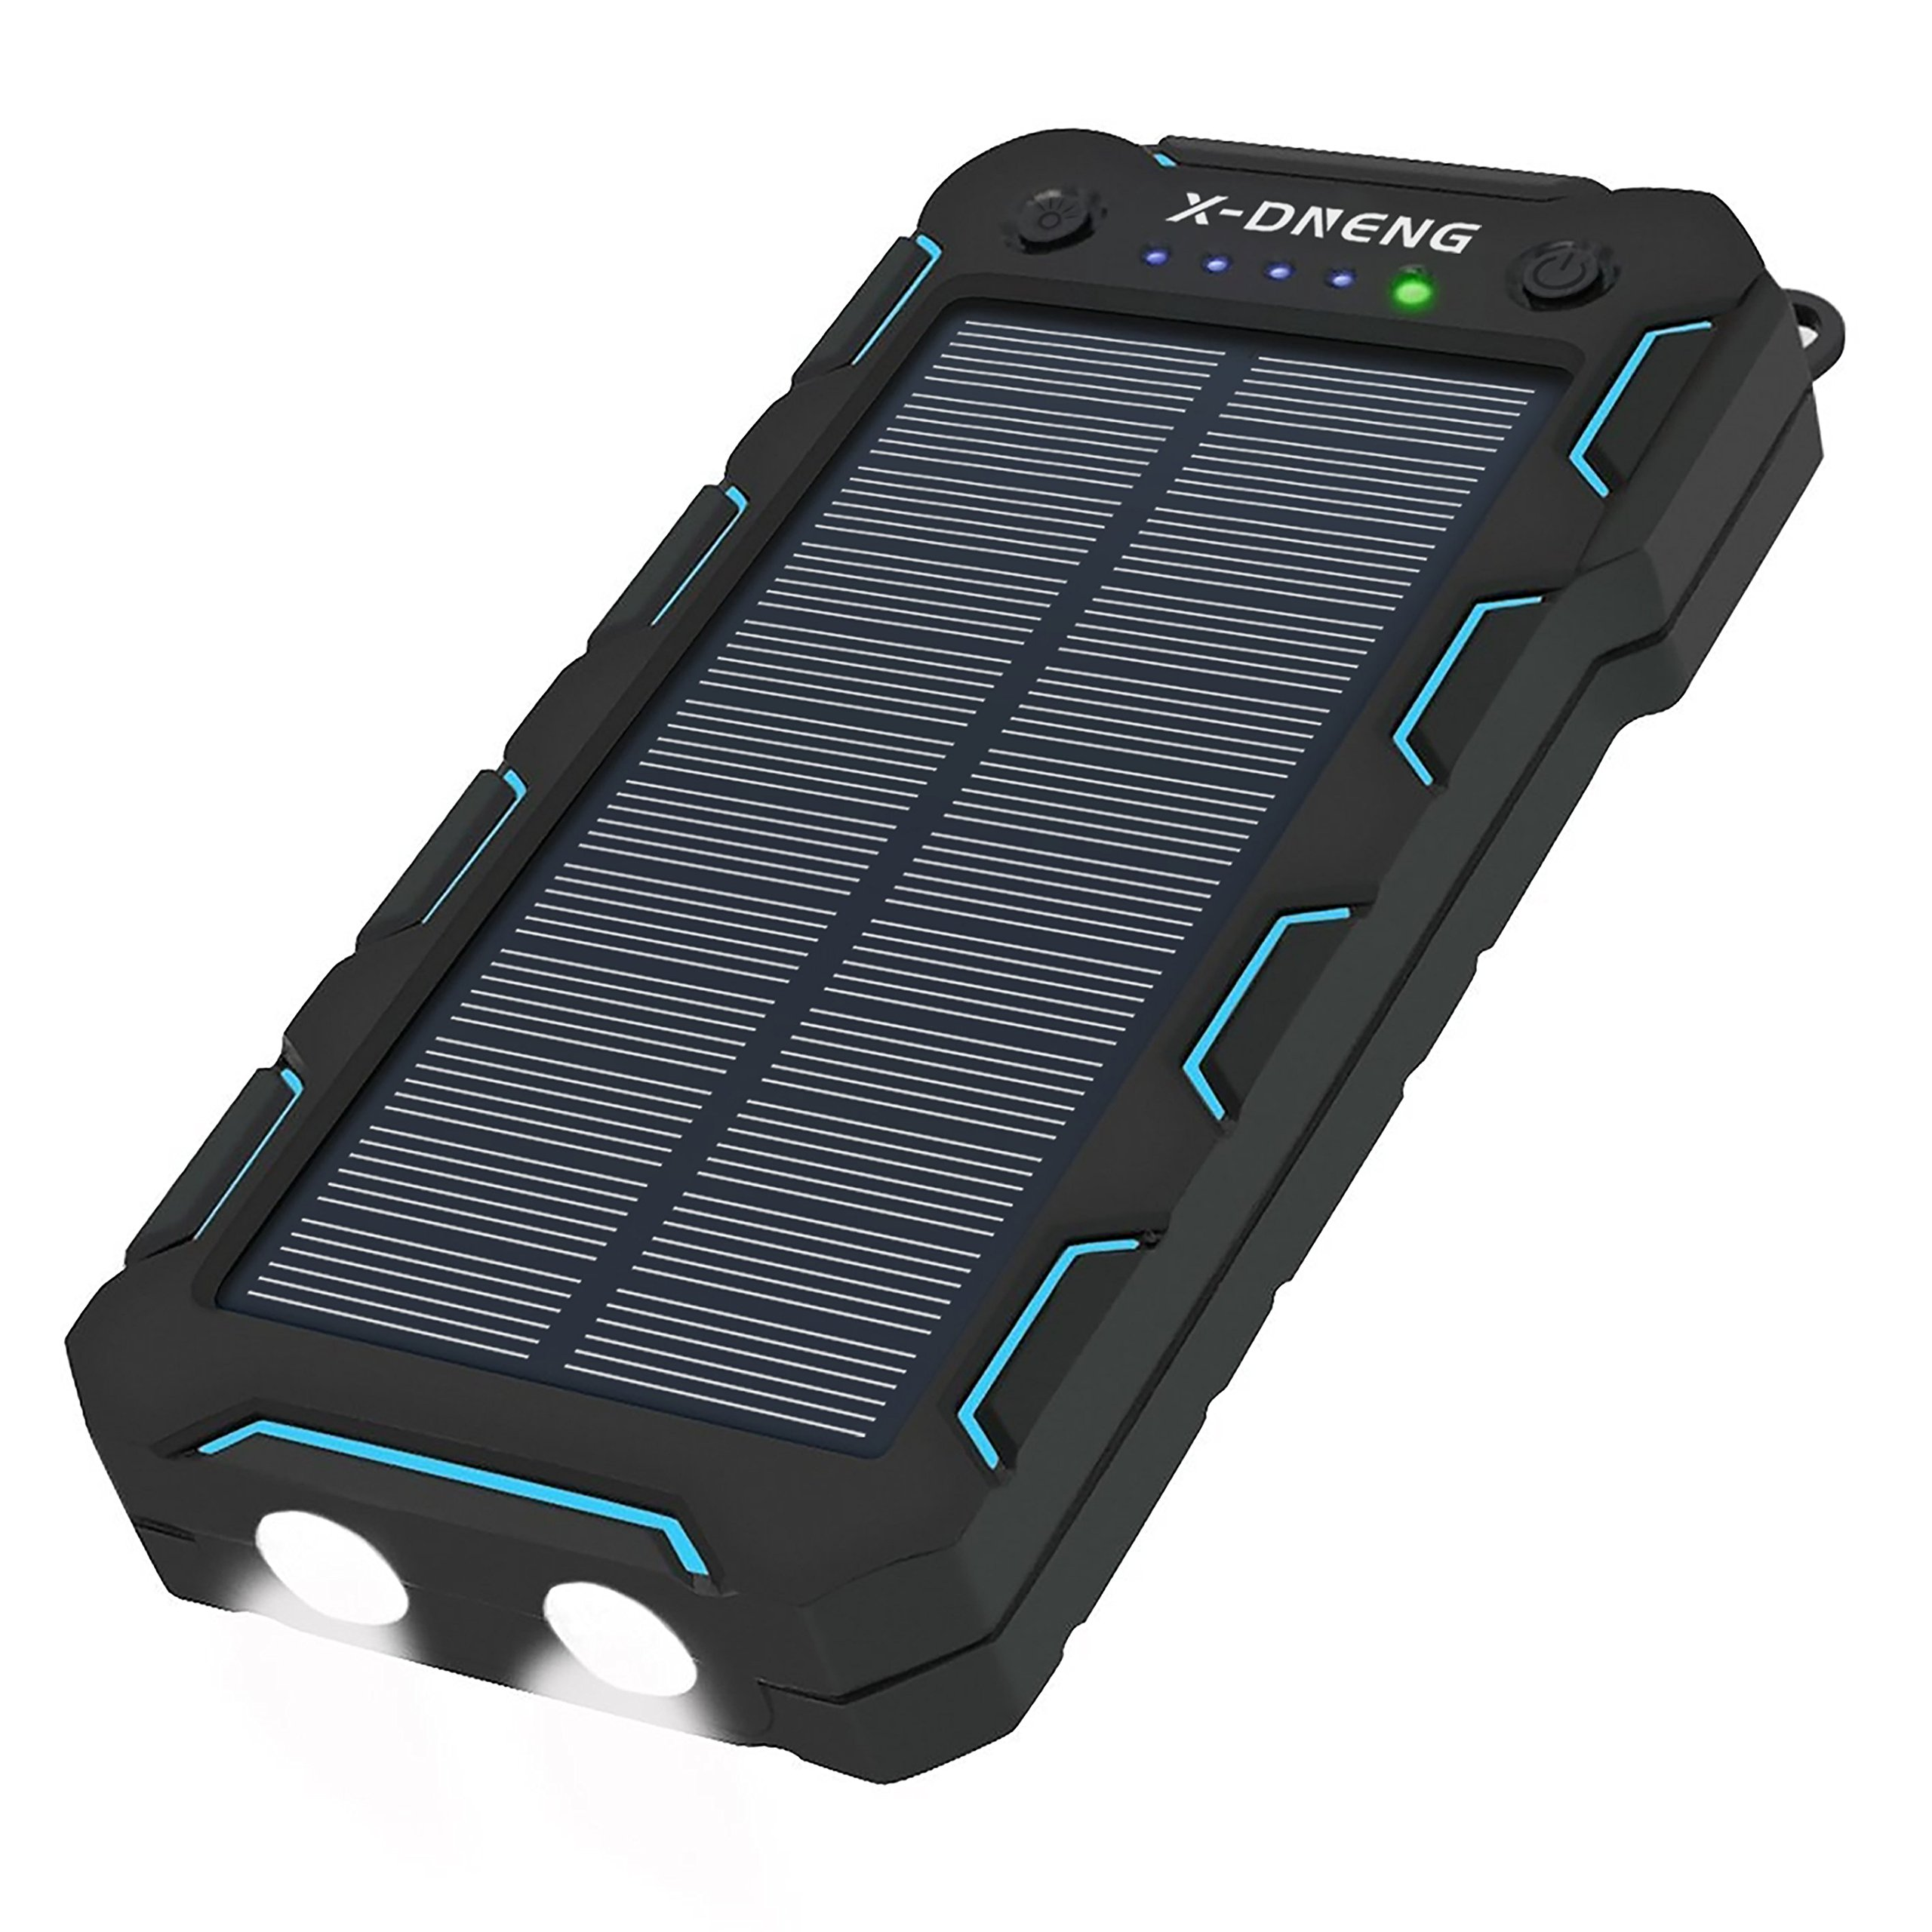 Solar Charger 15000 mAh, Portable Solar Panel Phone Charger Solar Power Bank with Dual USB, LED Flashlight, IP65 Waterproof, Shockproof and Dustproof, for Cell Phone, iPhone, Samsung Galaxy, iPad, GoPro Camera, GPS , Bluetooth Speaker, Blue